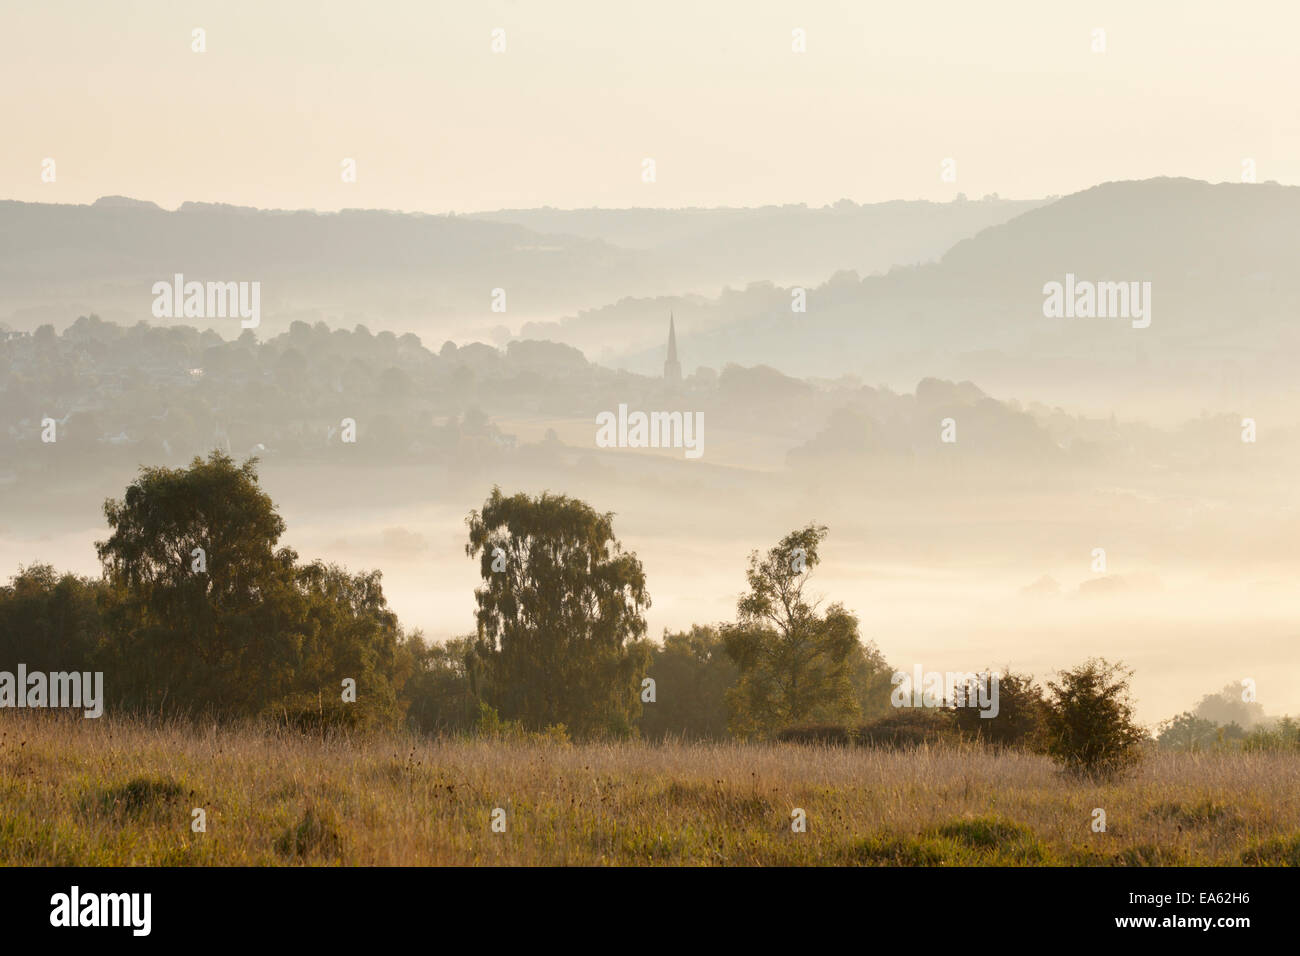 View towards Painswick village in the Cotswold Hills, from Scottsquar Hill. Gloucestershire. UK. - Stock Image